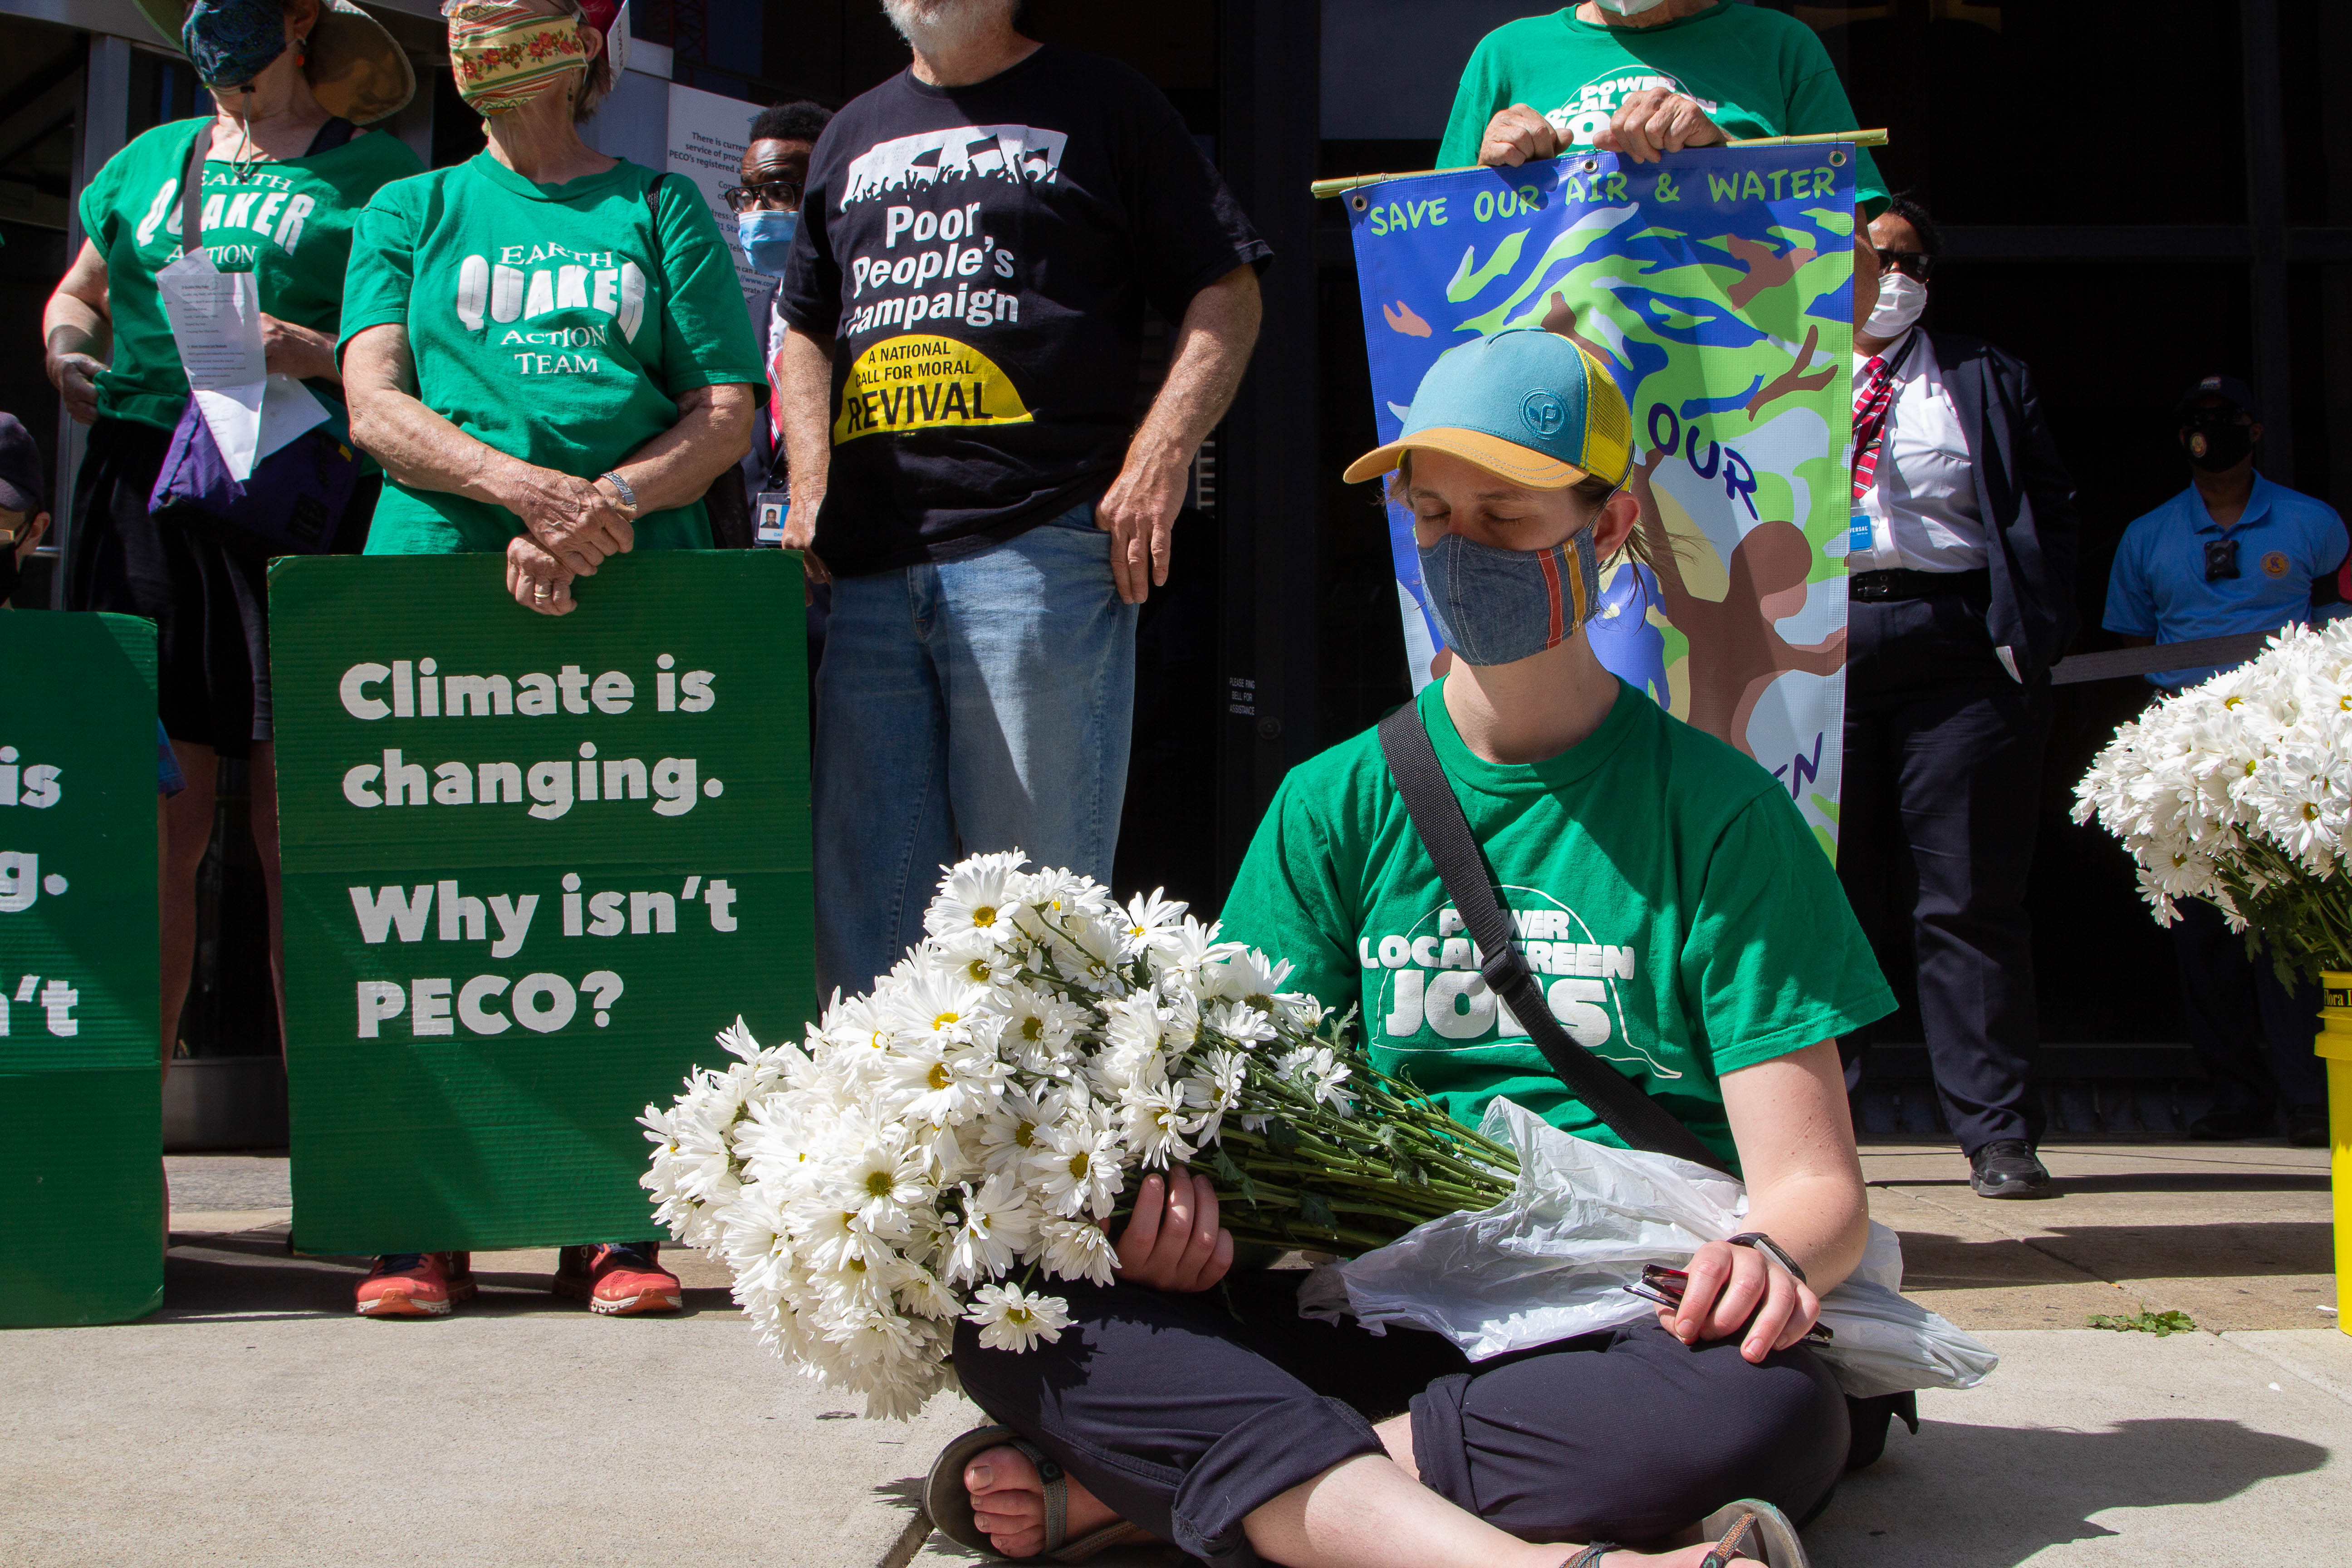 Person holding daises sits cross legged on the ground with eyes closed. People holding signs stand behind.